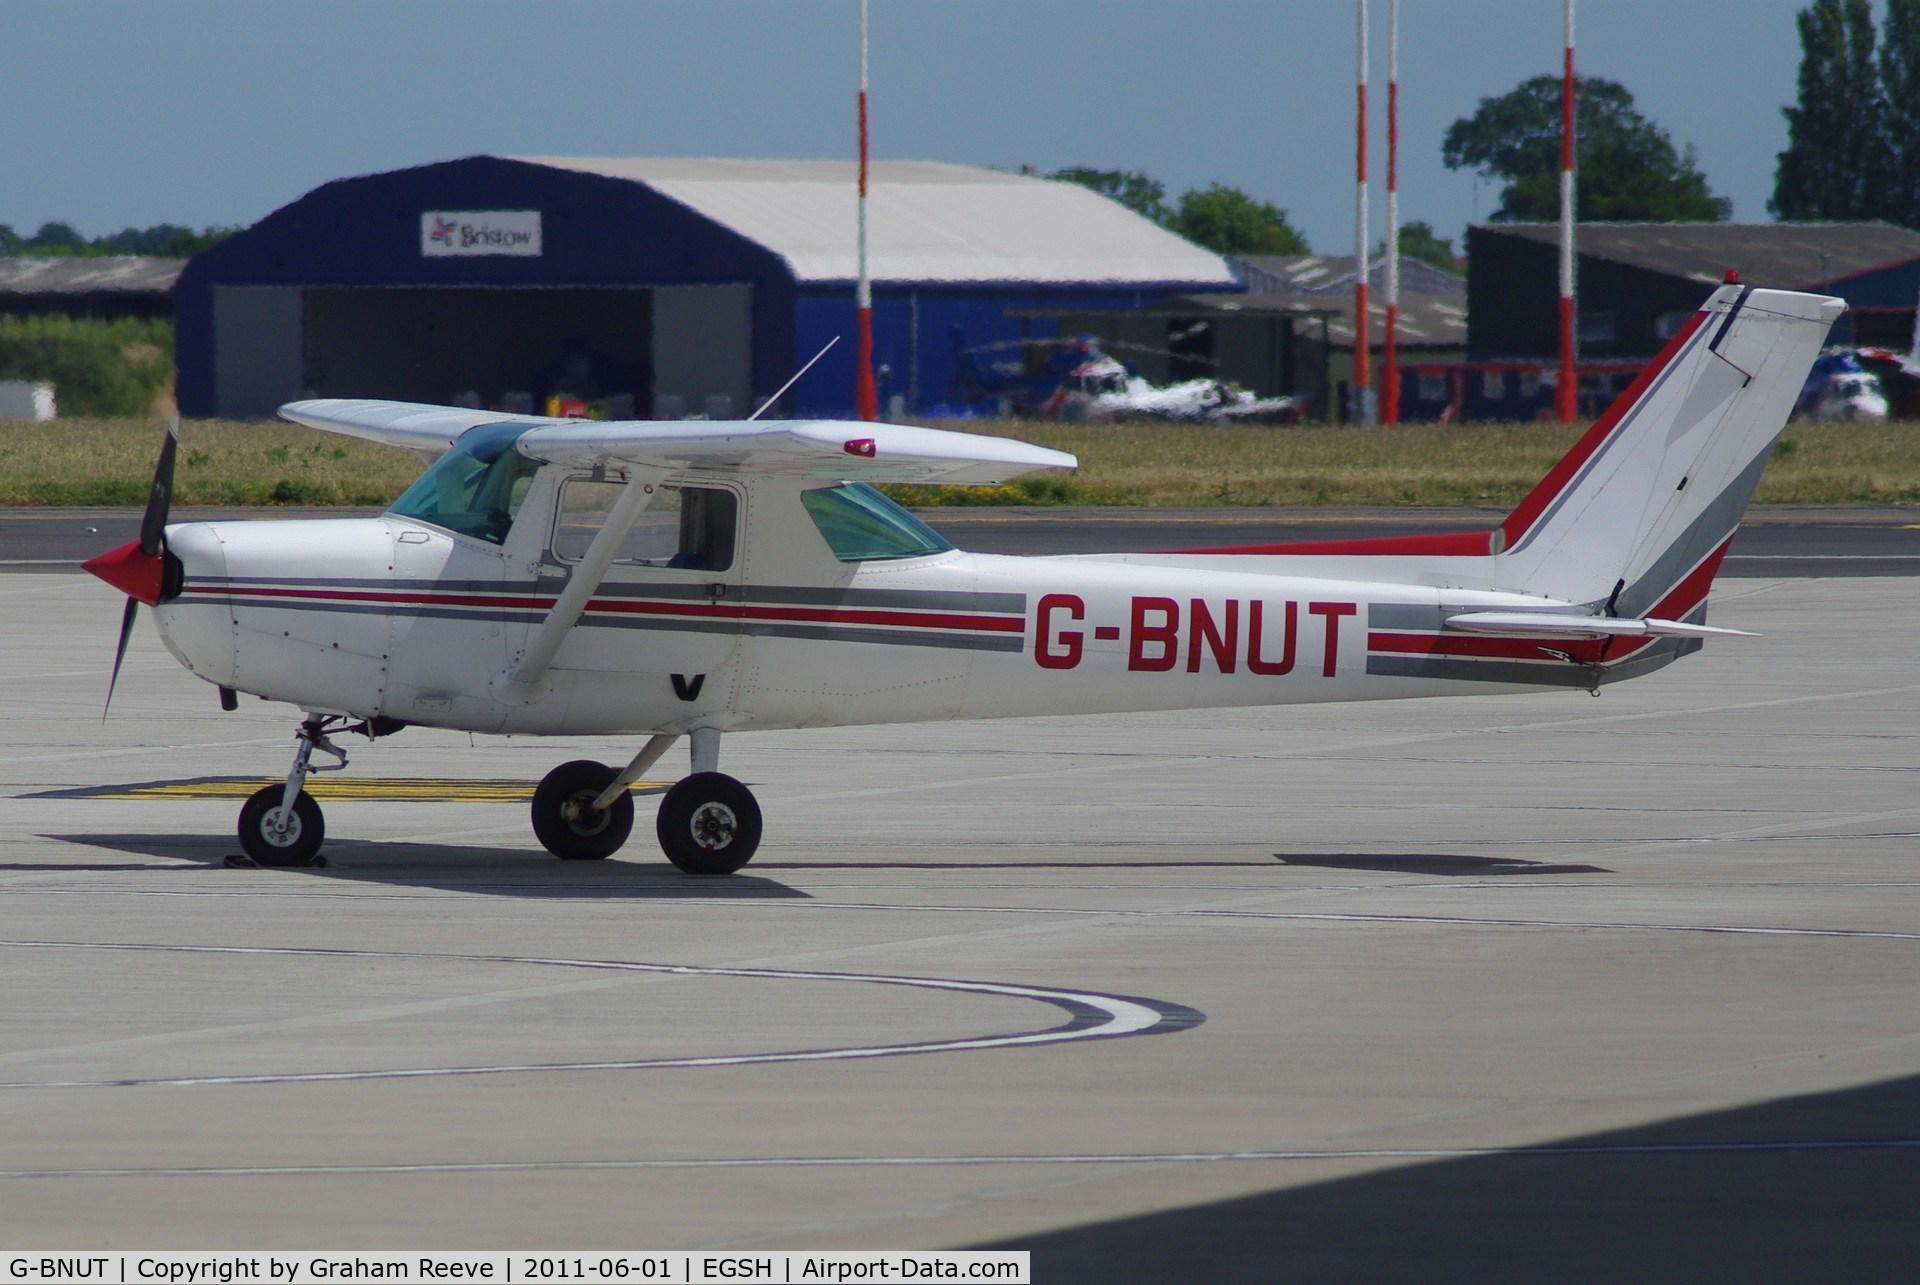 G-BNUT, 1978 Cessna 152 C/N 152-79458, Parked at Norwich.